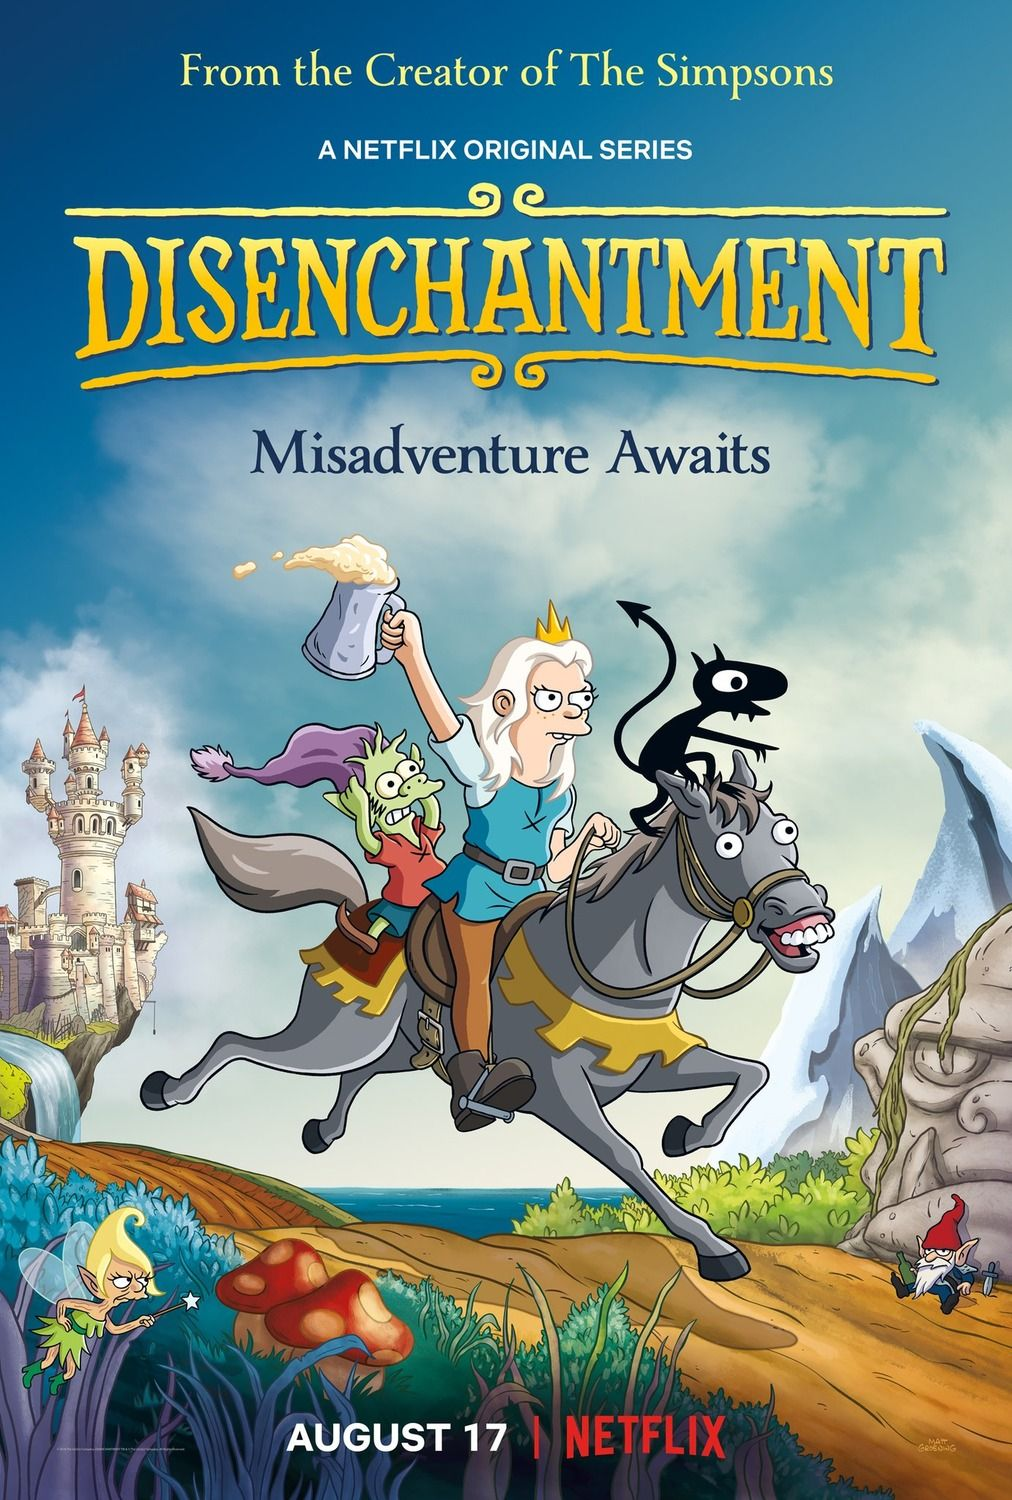 Return To The Main Poster Page For Disenchantment Matt Groening Netflix The Simpsons